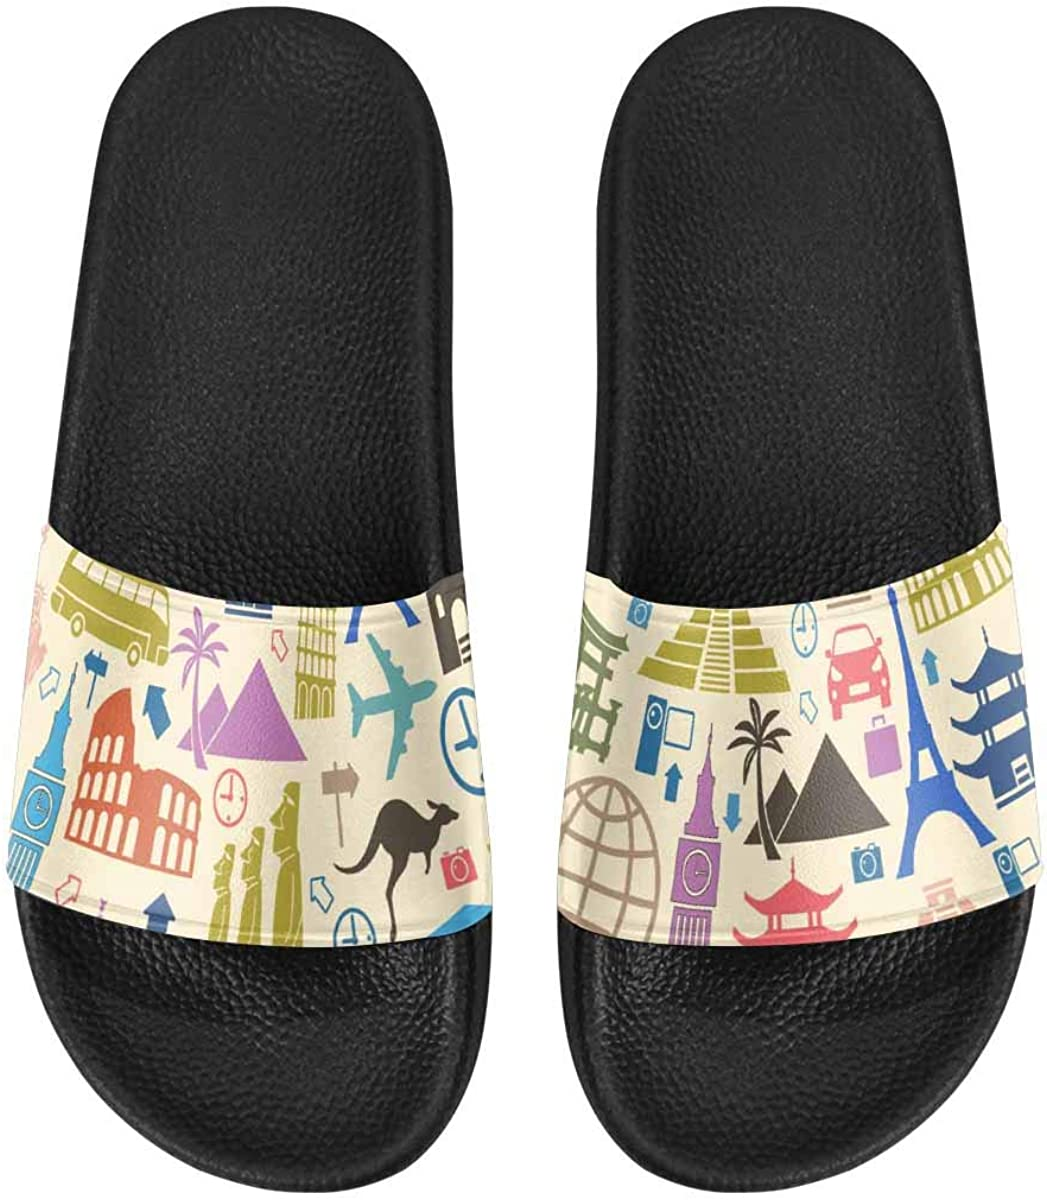 InterestPrint Slipper Sandals for Women with Soft Material Cranes Background